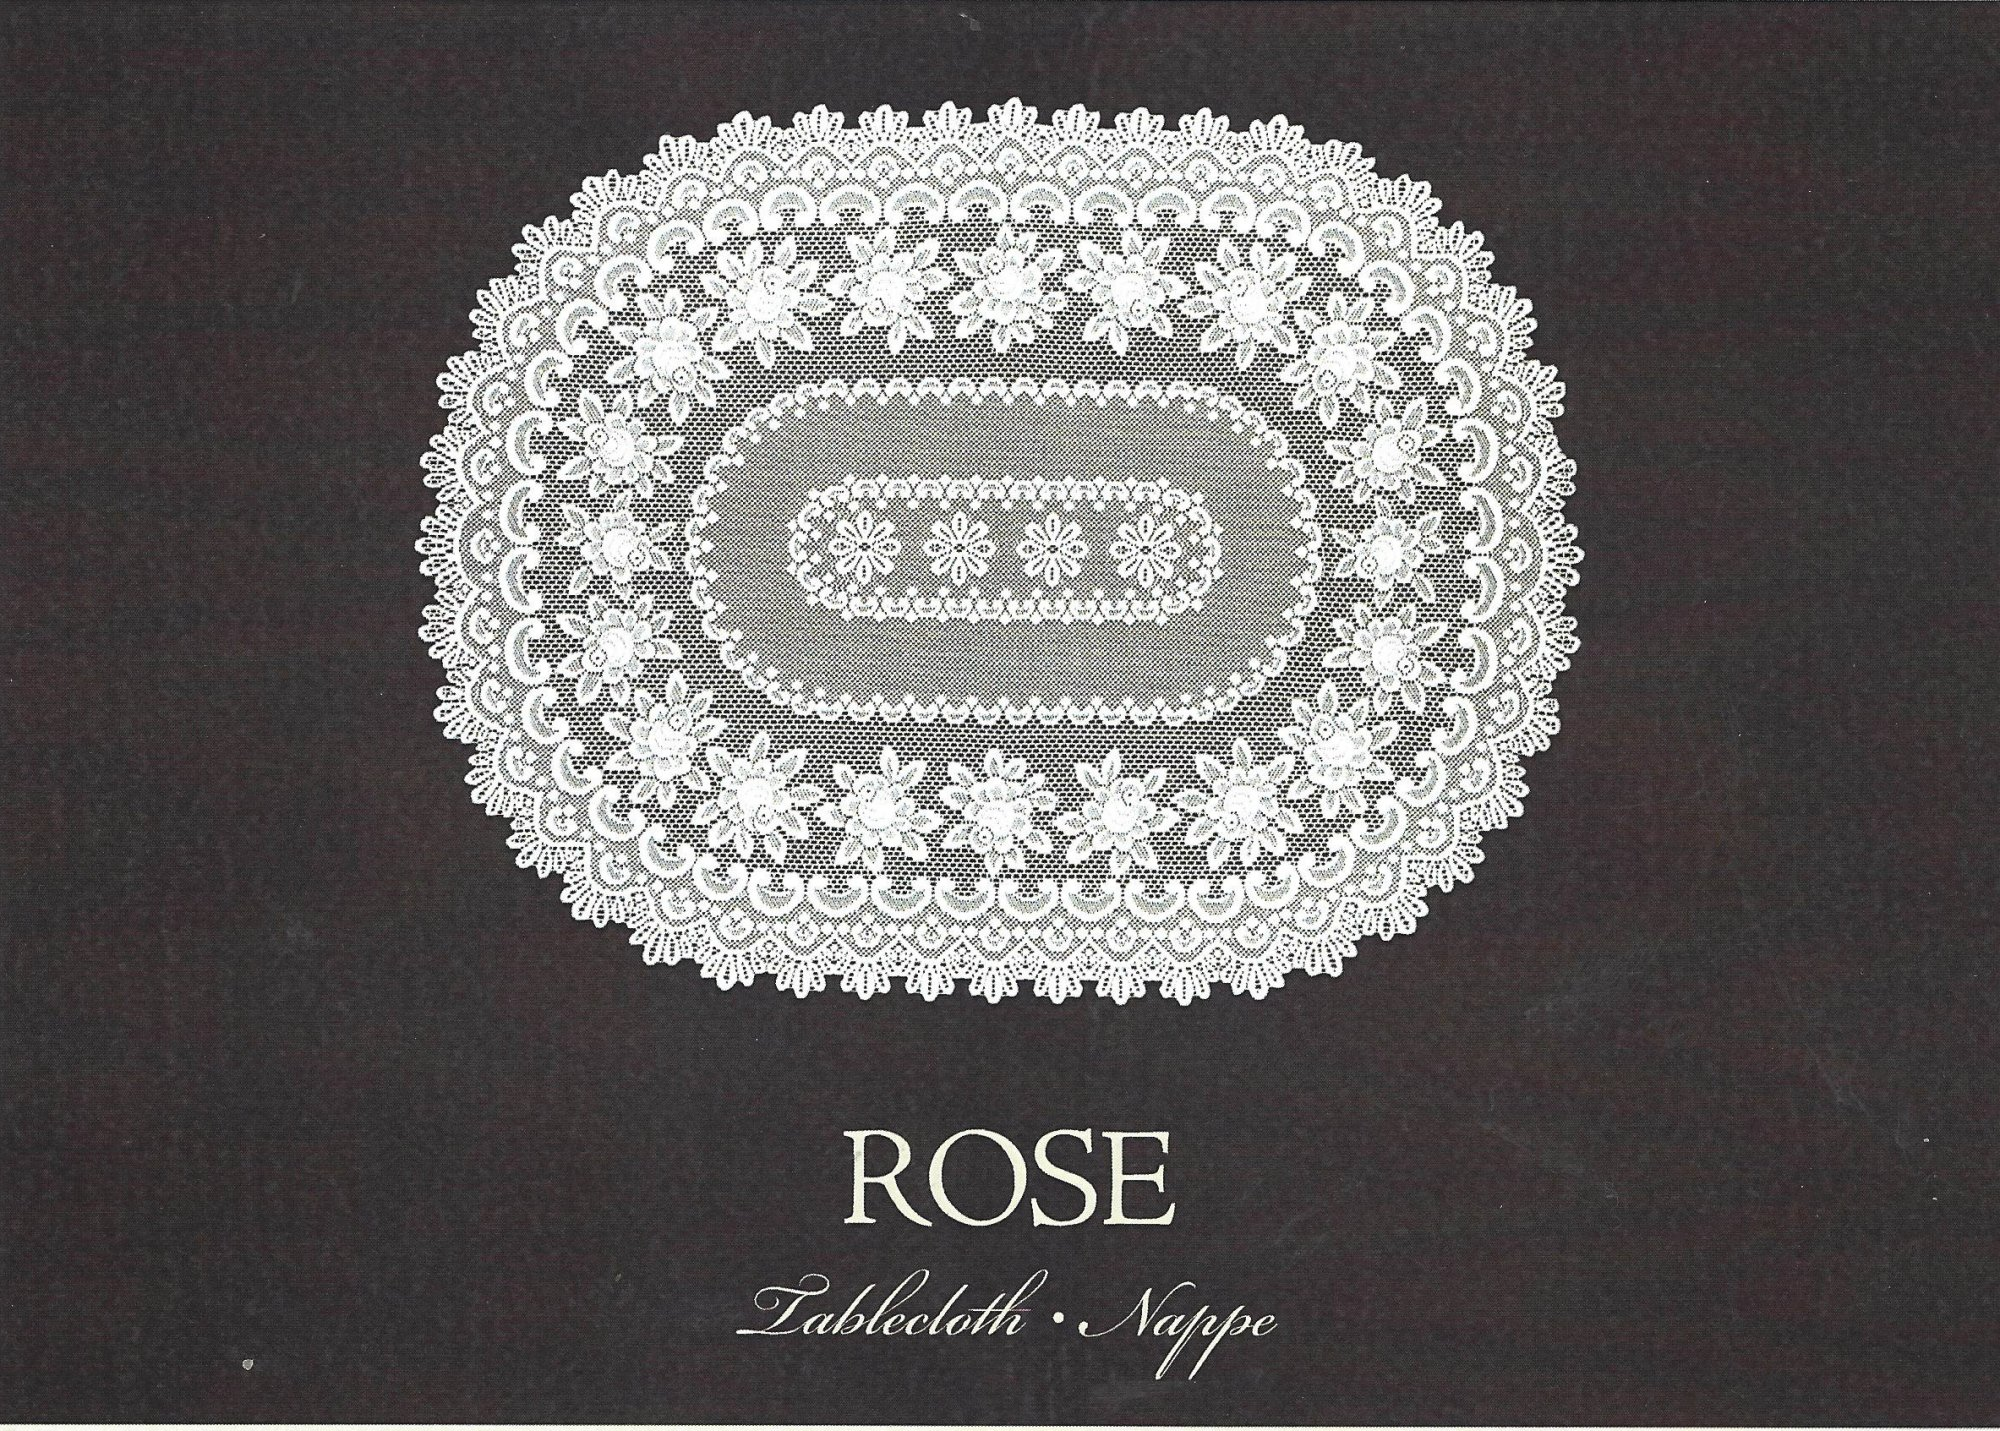 HERITAGE LACE ROSE TABLECLOTH